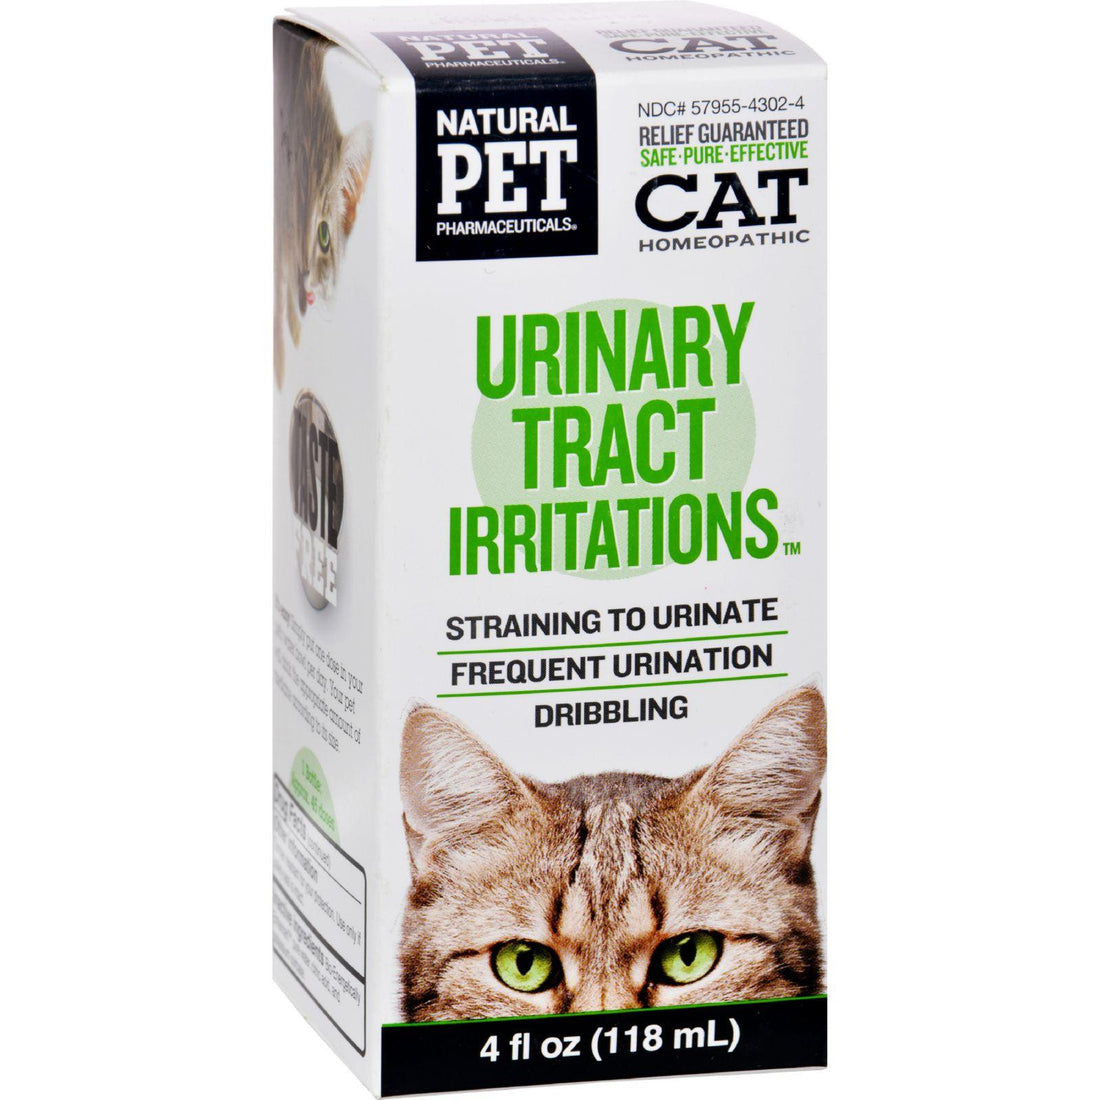 Mother Mantis: King Bio Homeopathic Natural Pet Cat - Urinary Tract Irritations - 4 Oz King Bio Homeopathic